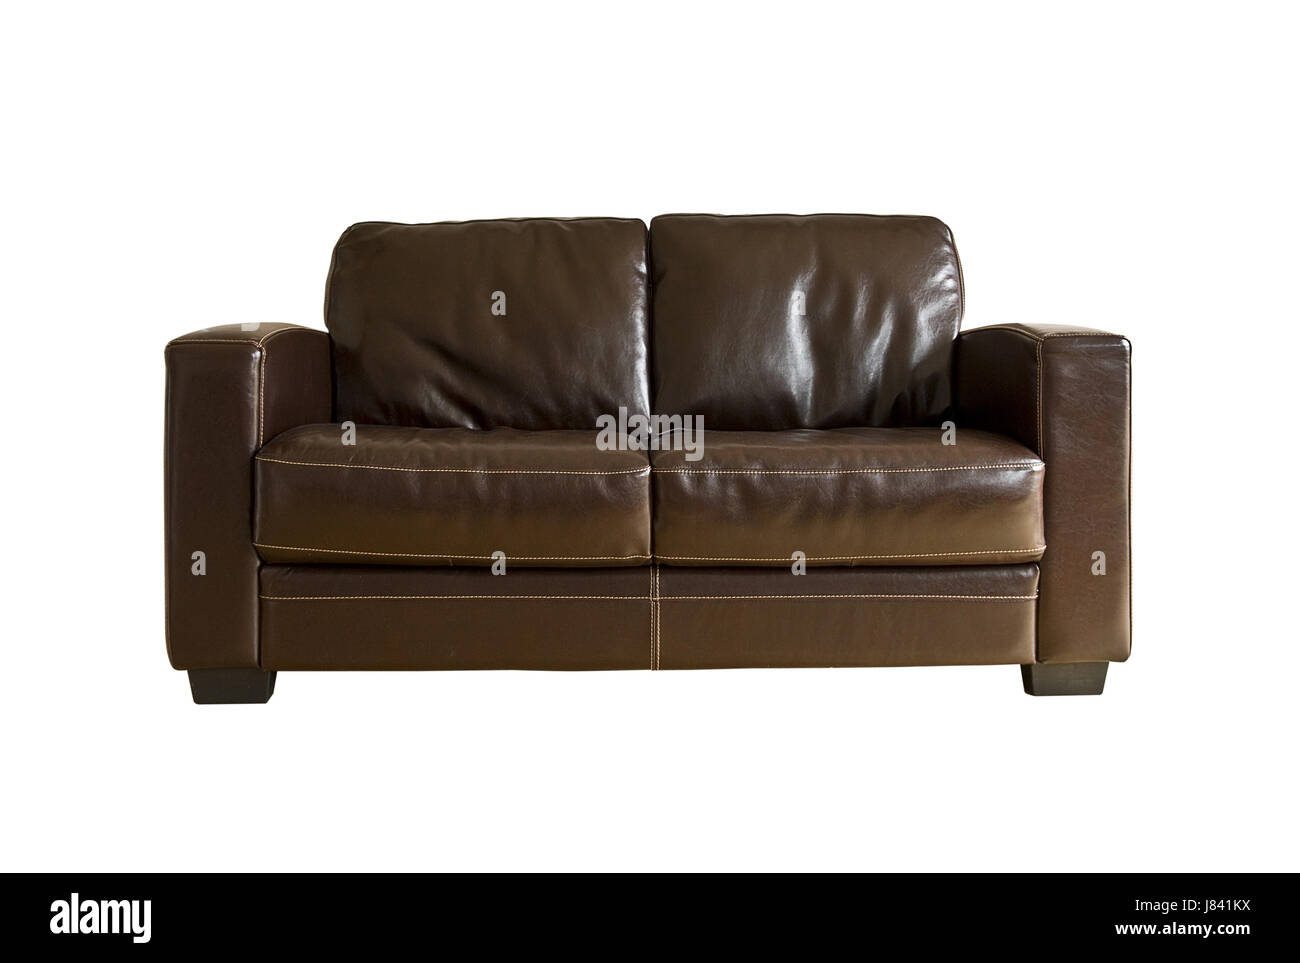 Furniture Brown Brownish Brunette Leather Sofa Seating